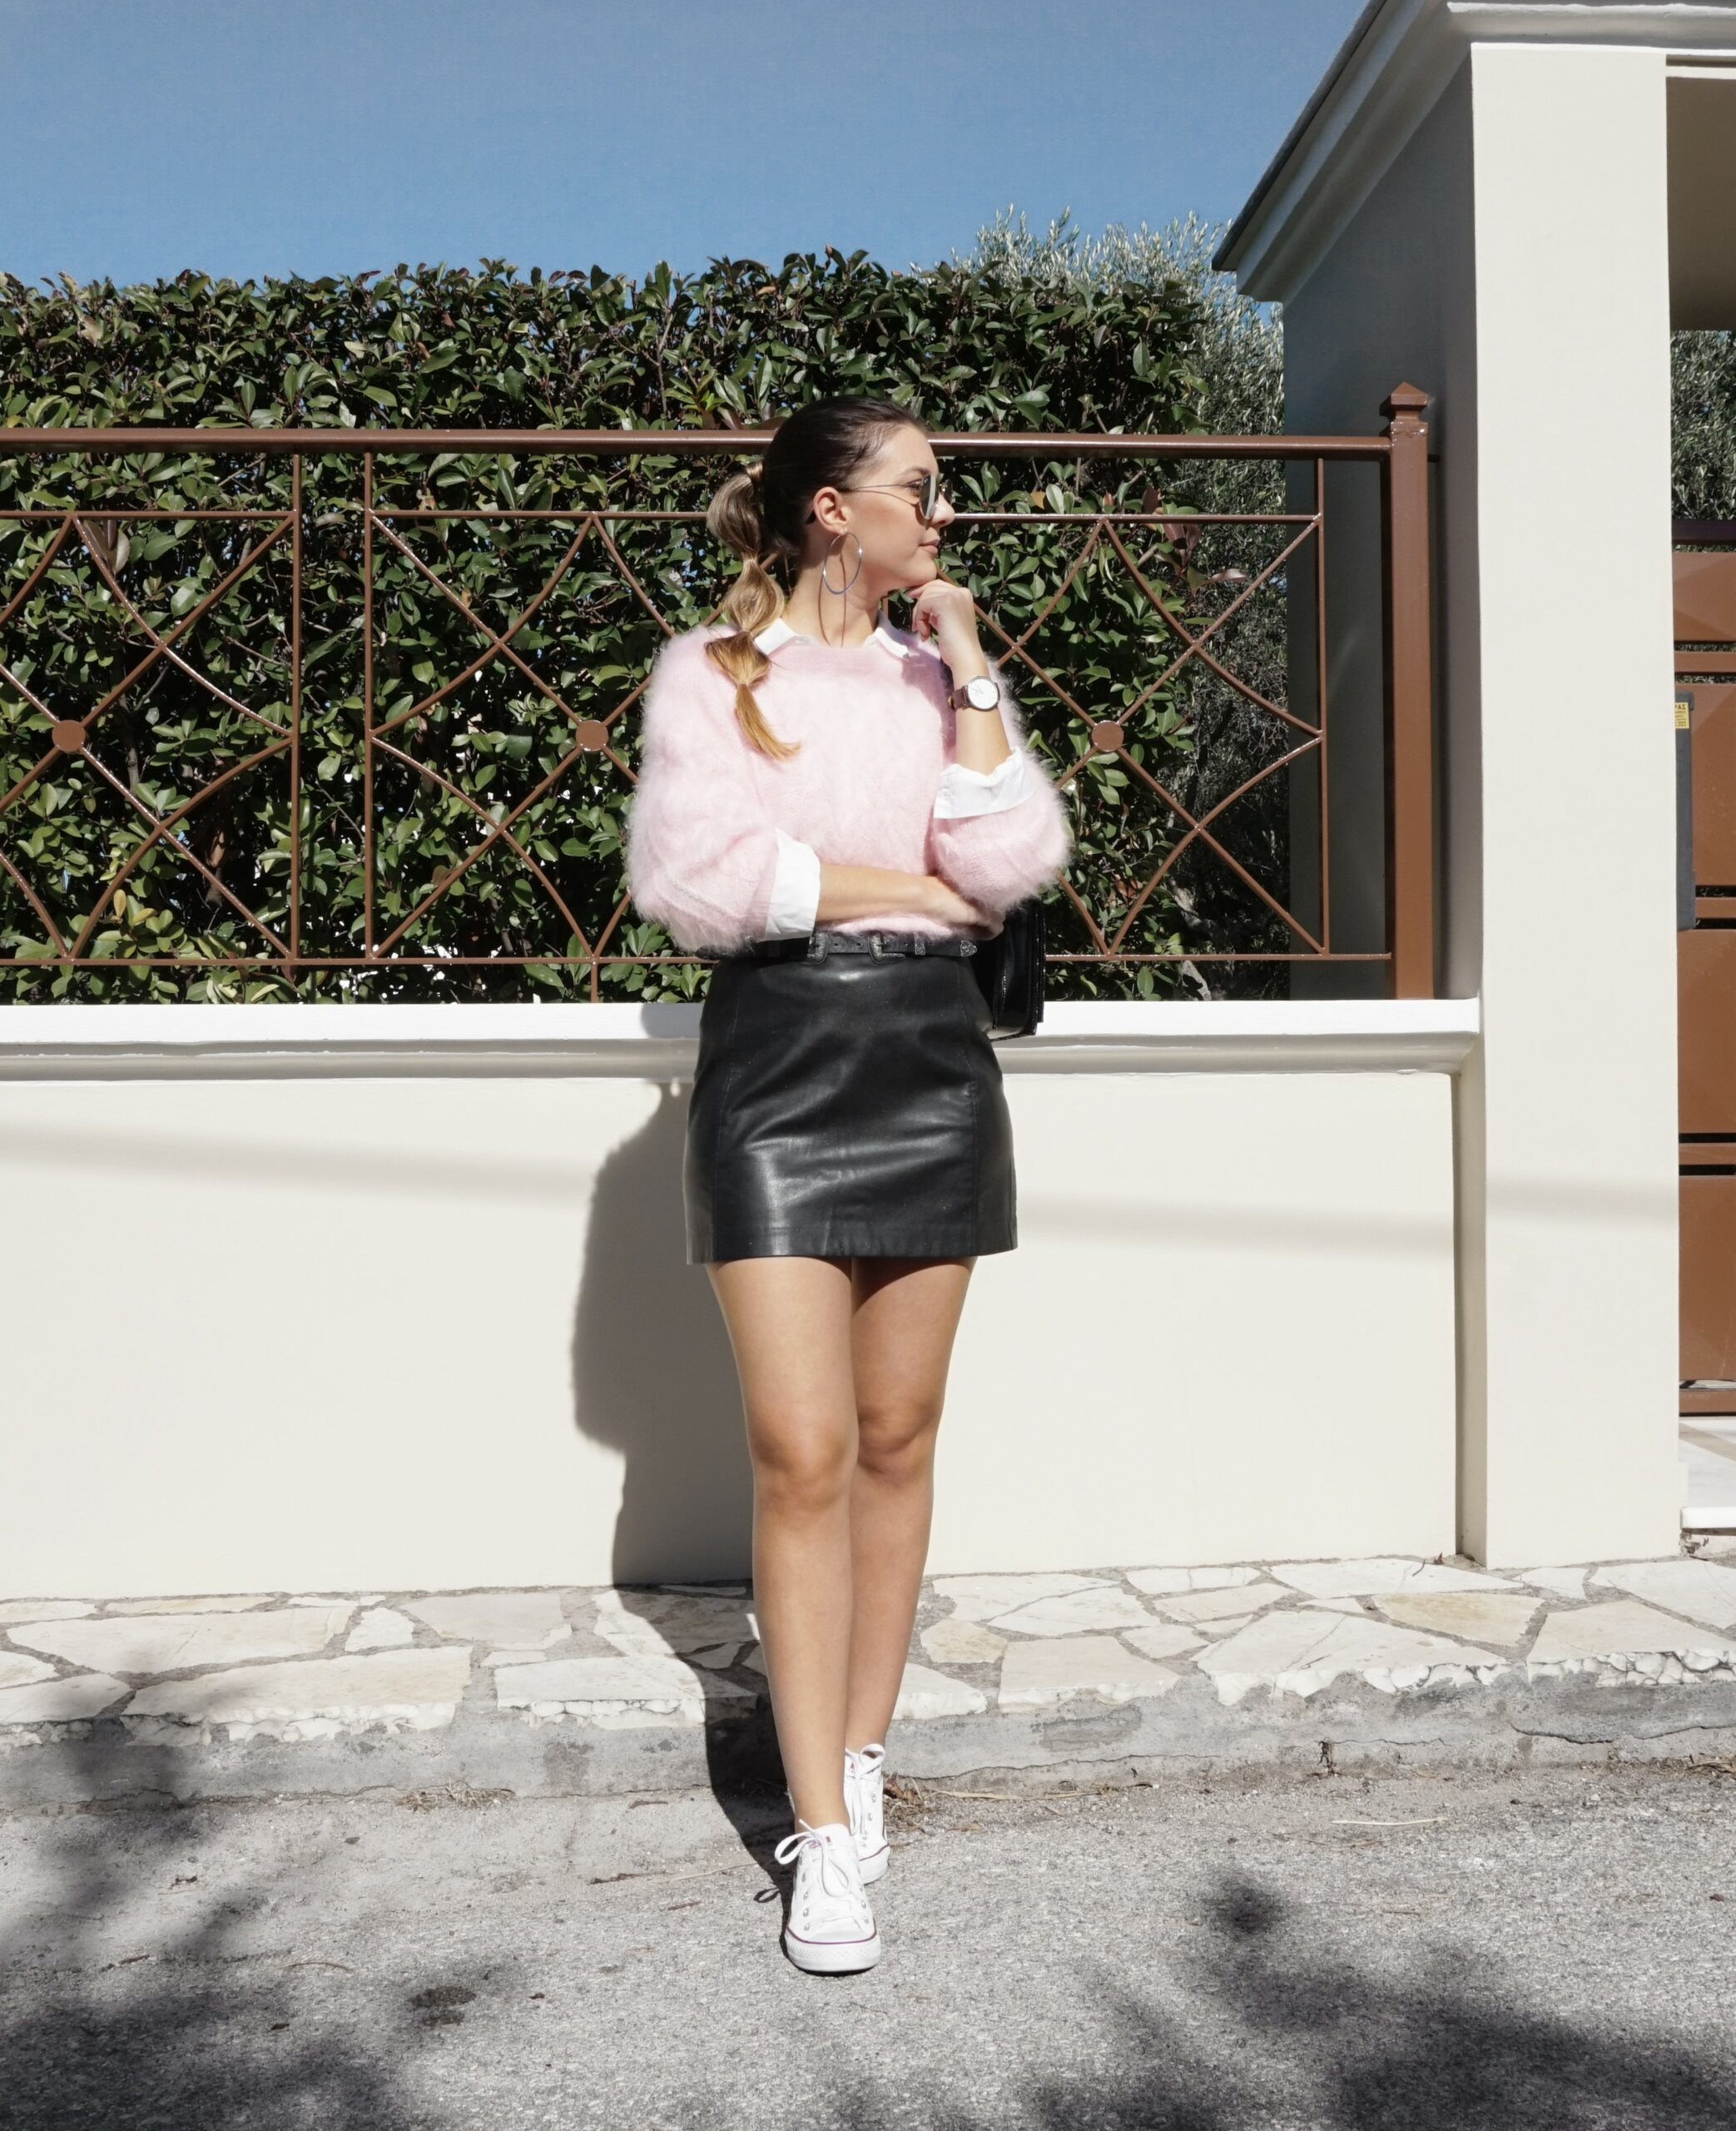 skirt with sneakers outfit